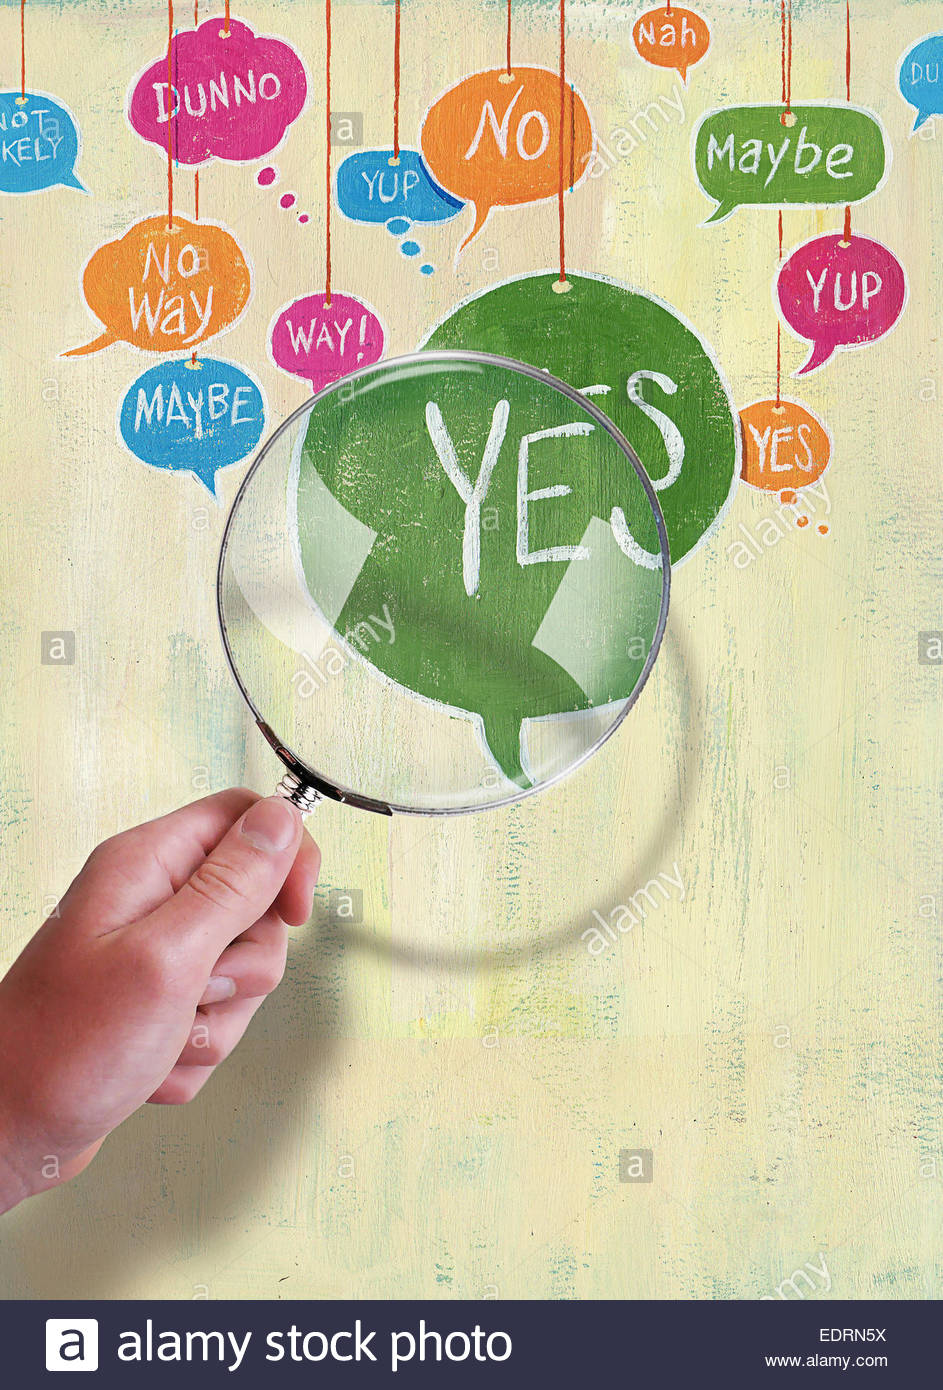 Hand holding magnifying glass over yes, no, maybe speech bubbles - Stock Image